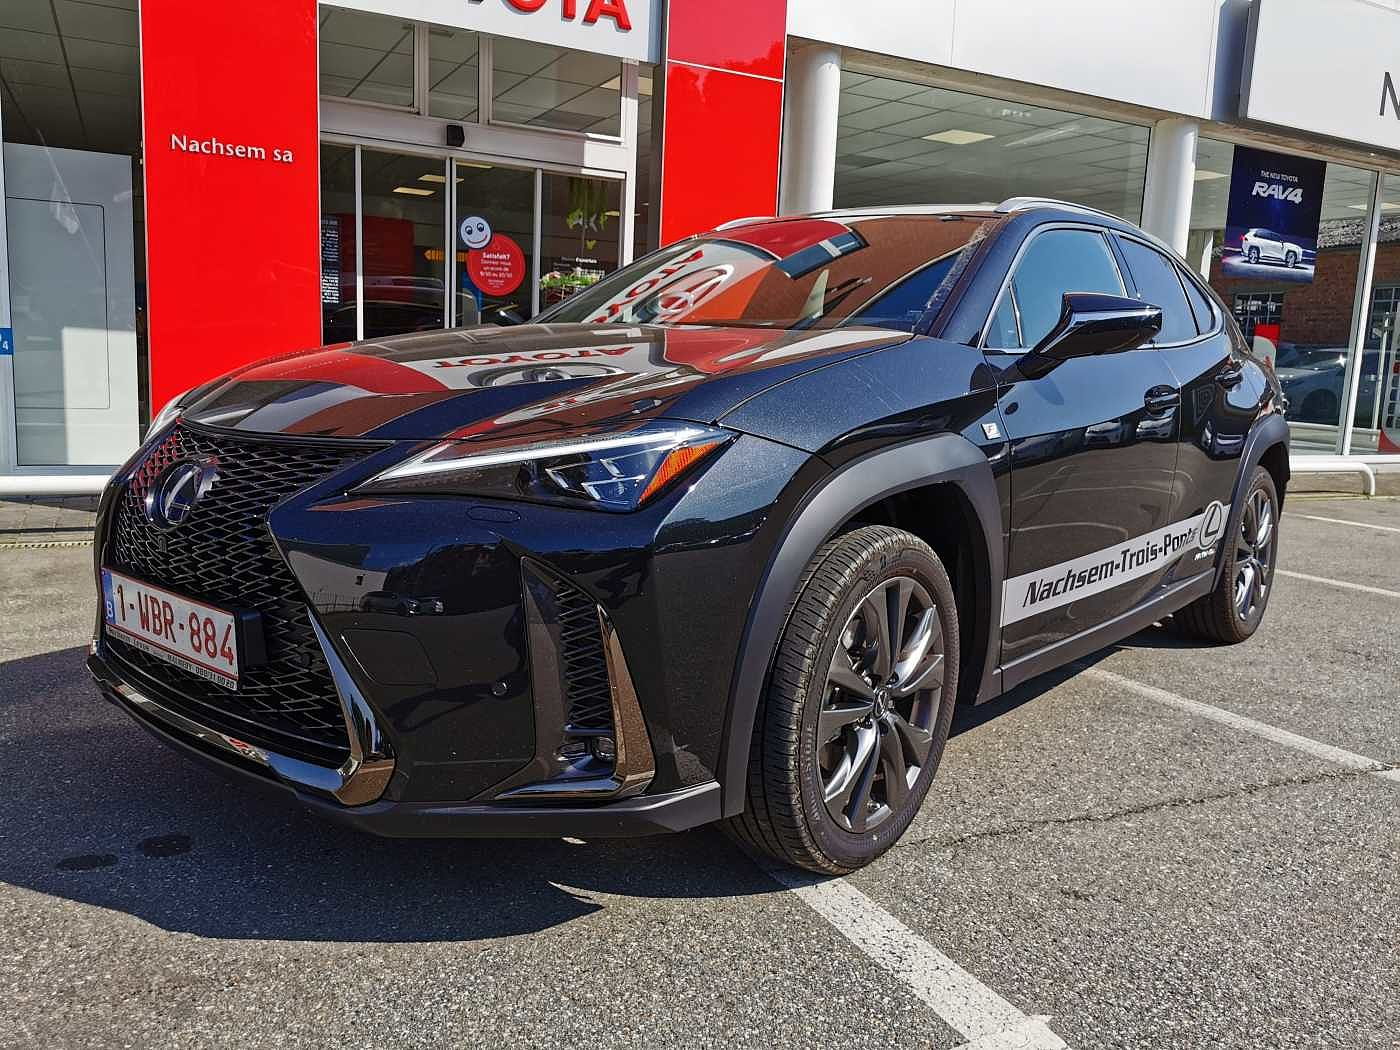 Lexus UX 250h 2.0 Hybrid AWD e-CVT - photo 3